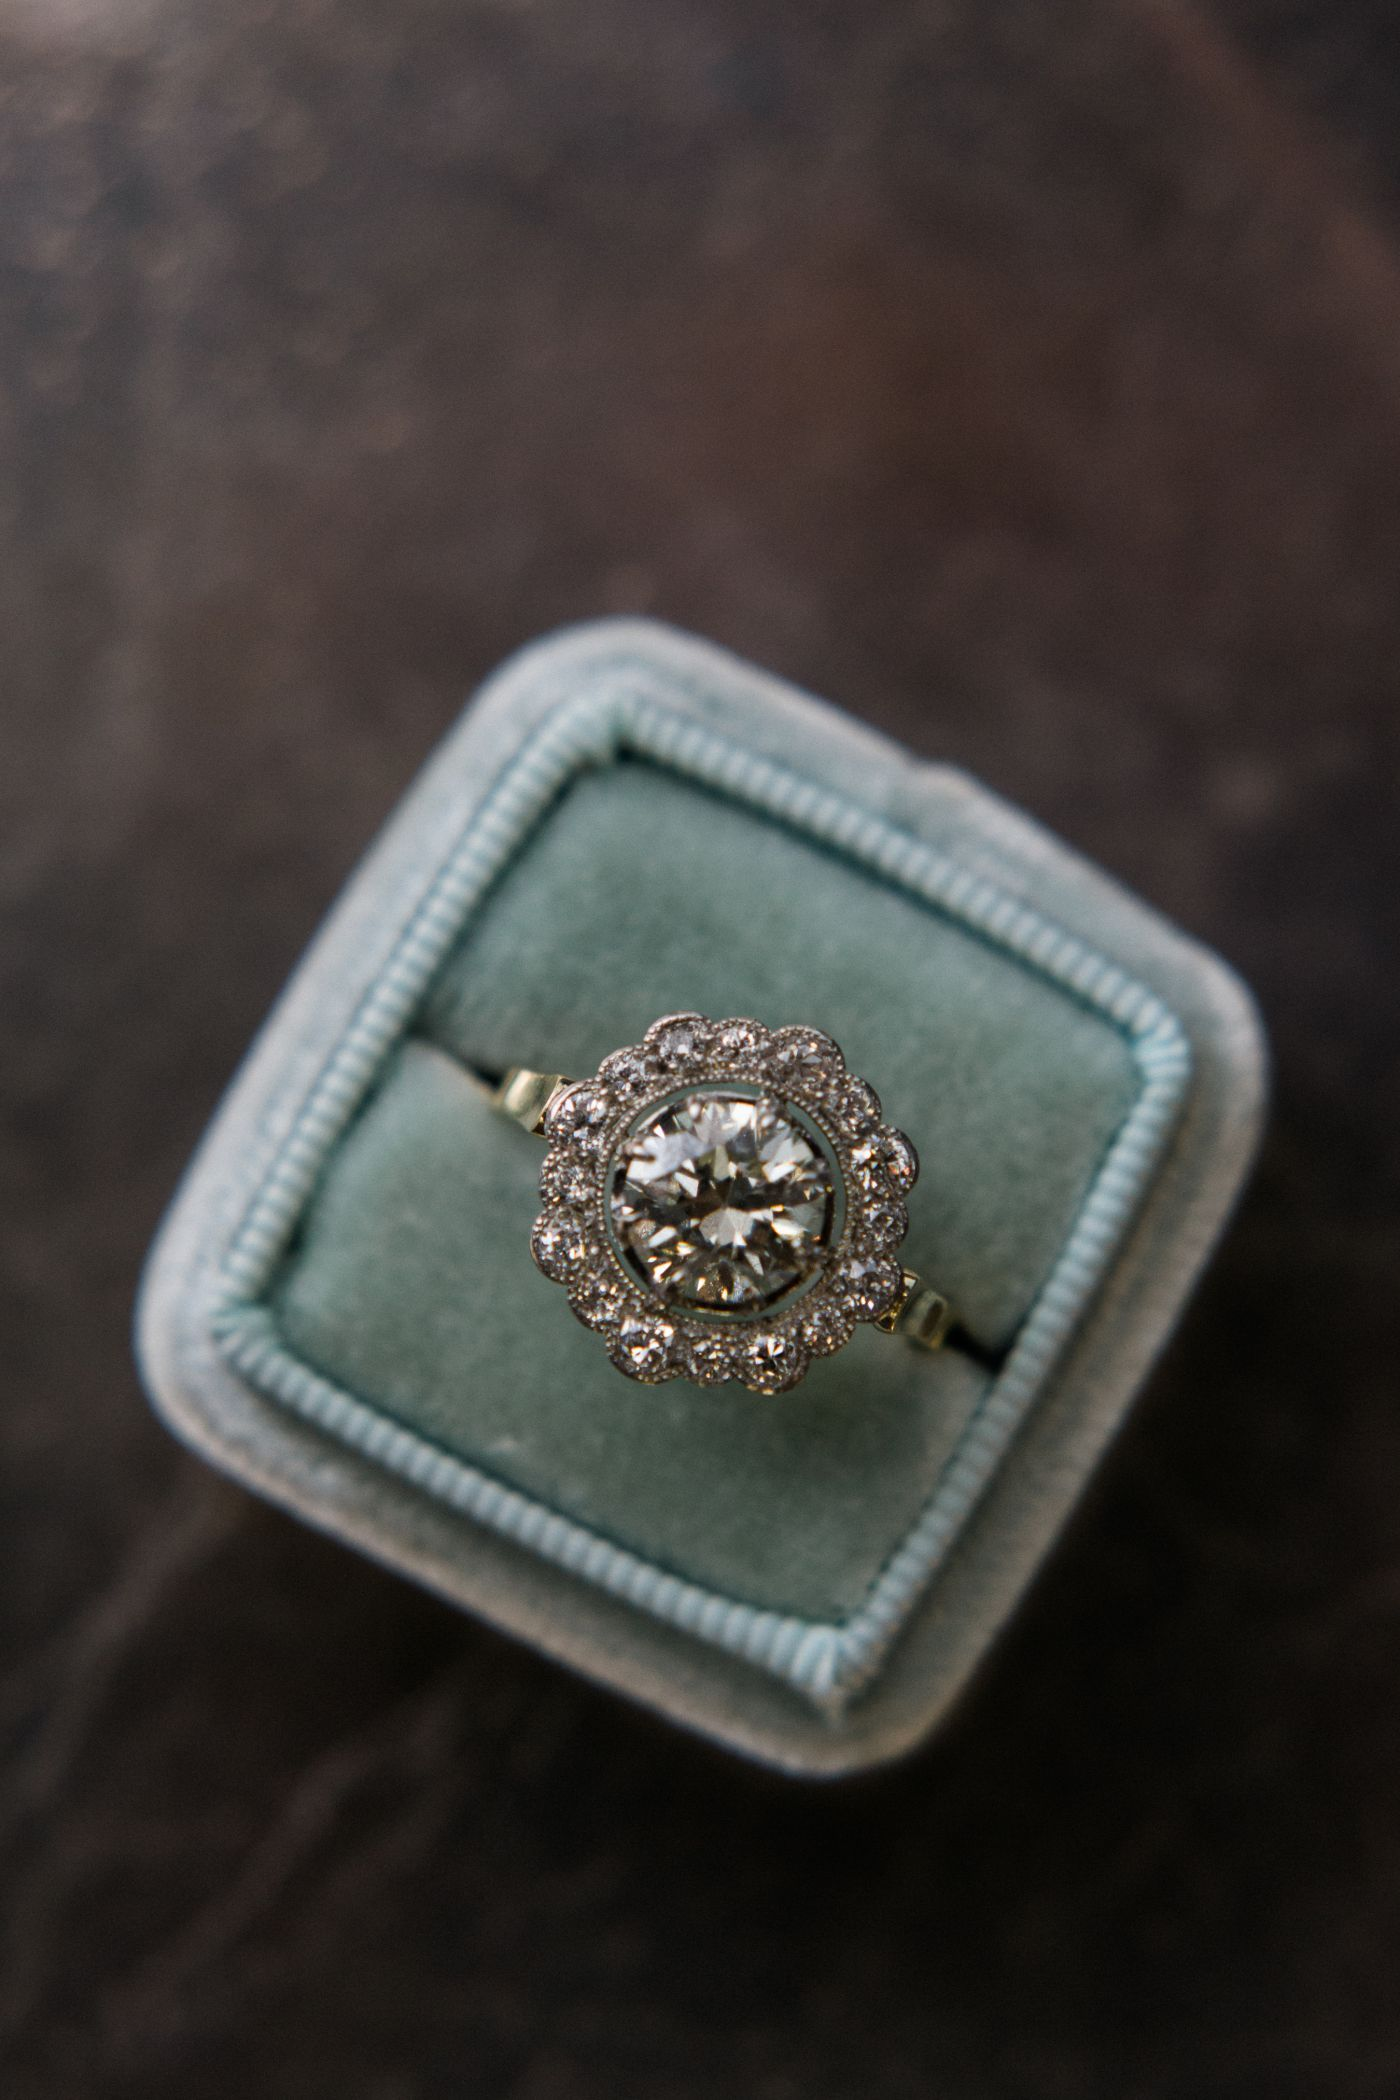 Scarborough, Edwardian, 1.59ct Transitional Brilliant cut diamond, halo of diamonds, yellow gold shank, Sold.